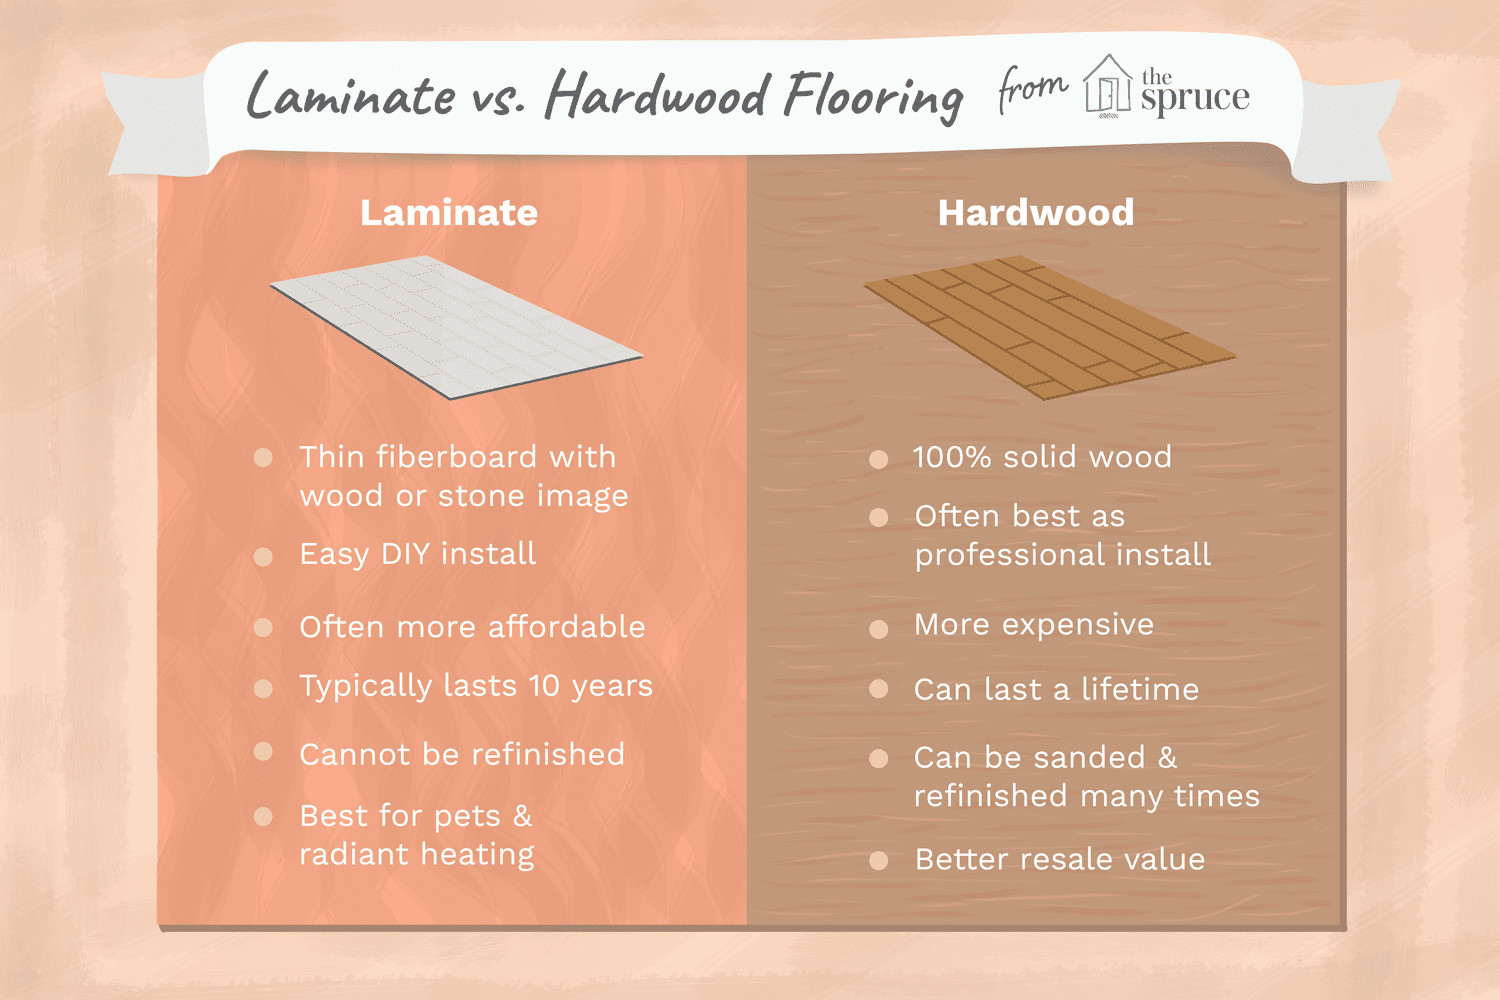 buy hardwood floor nailer of laminate vs hardwood doesnt have to be a hard decision within hardwood doesnt have to be a hard decision